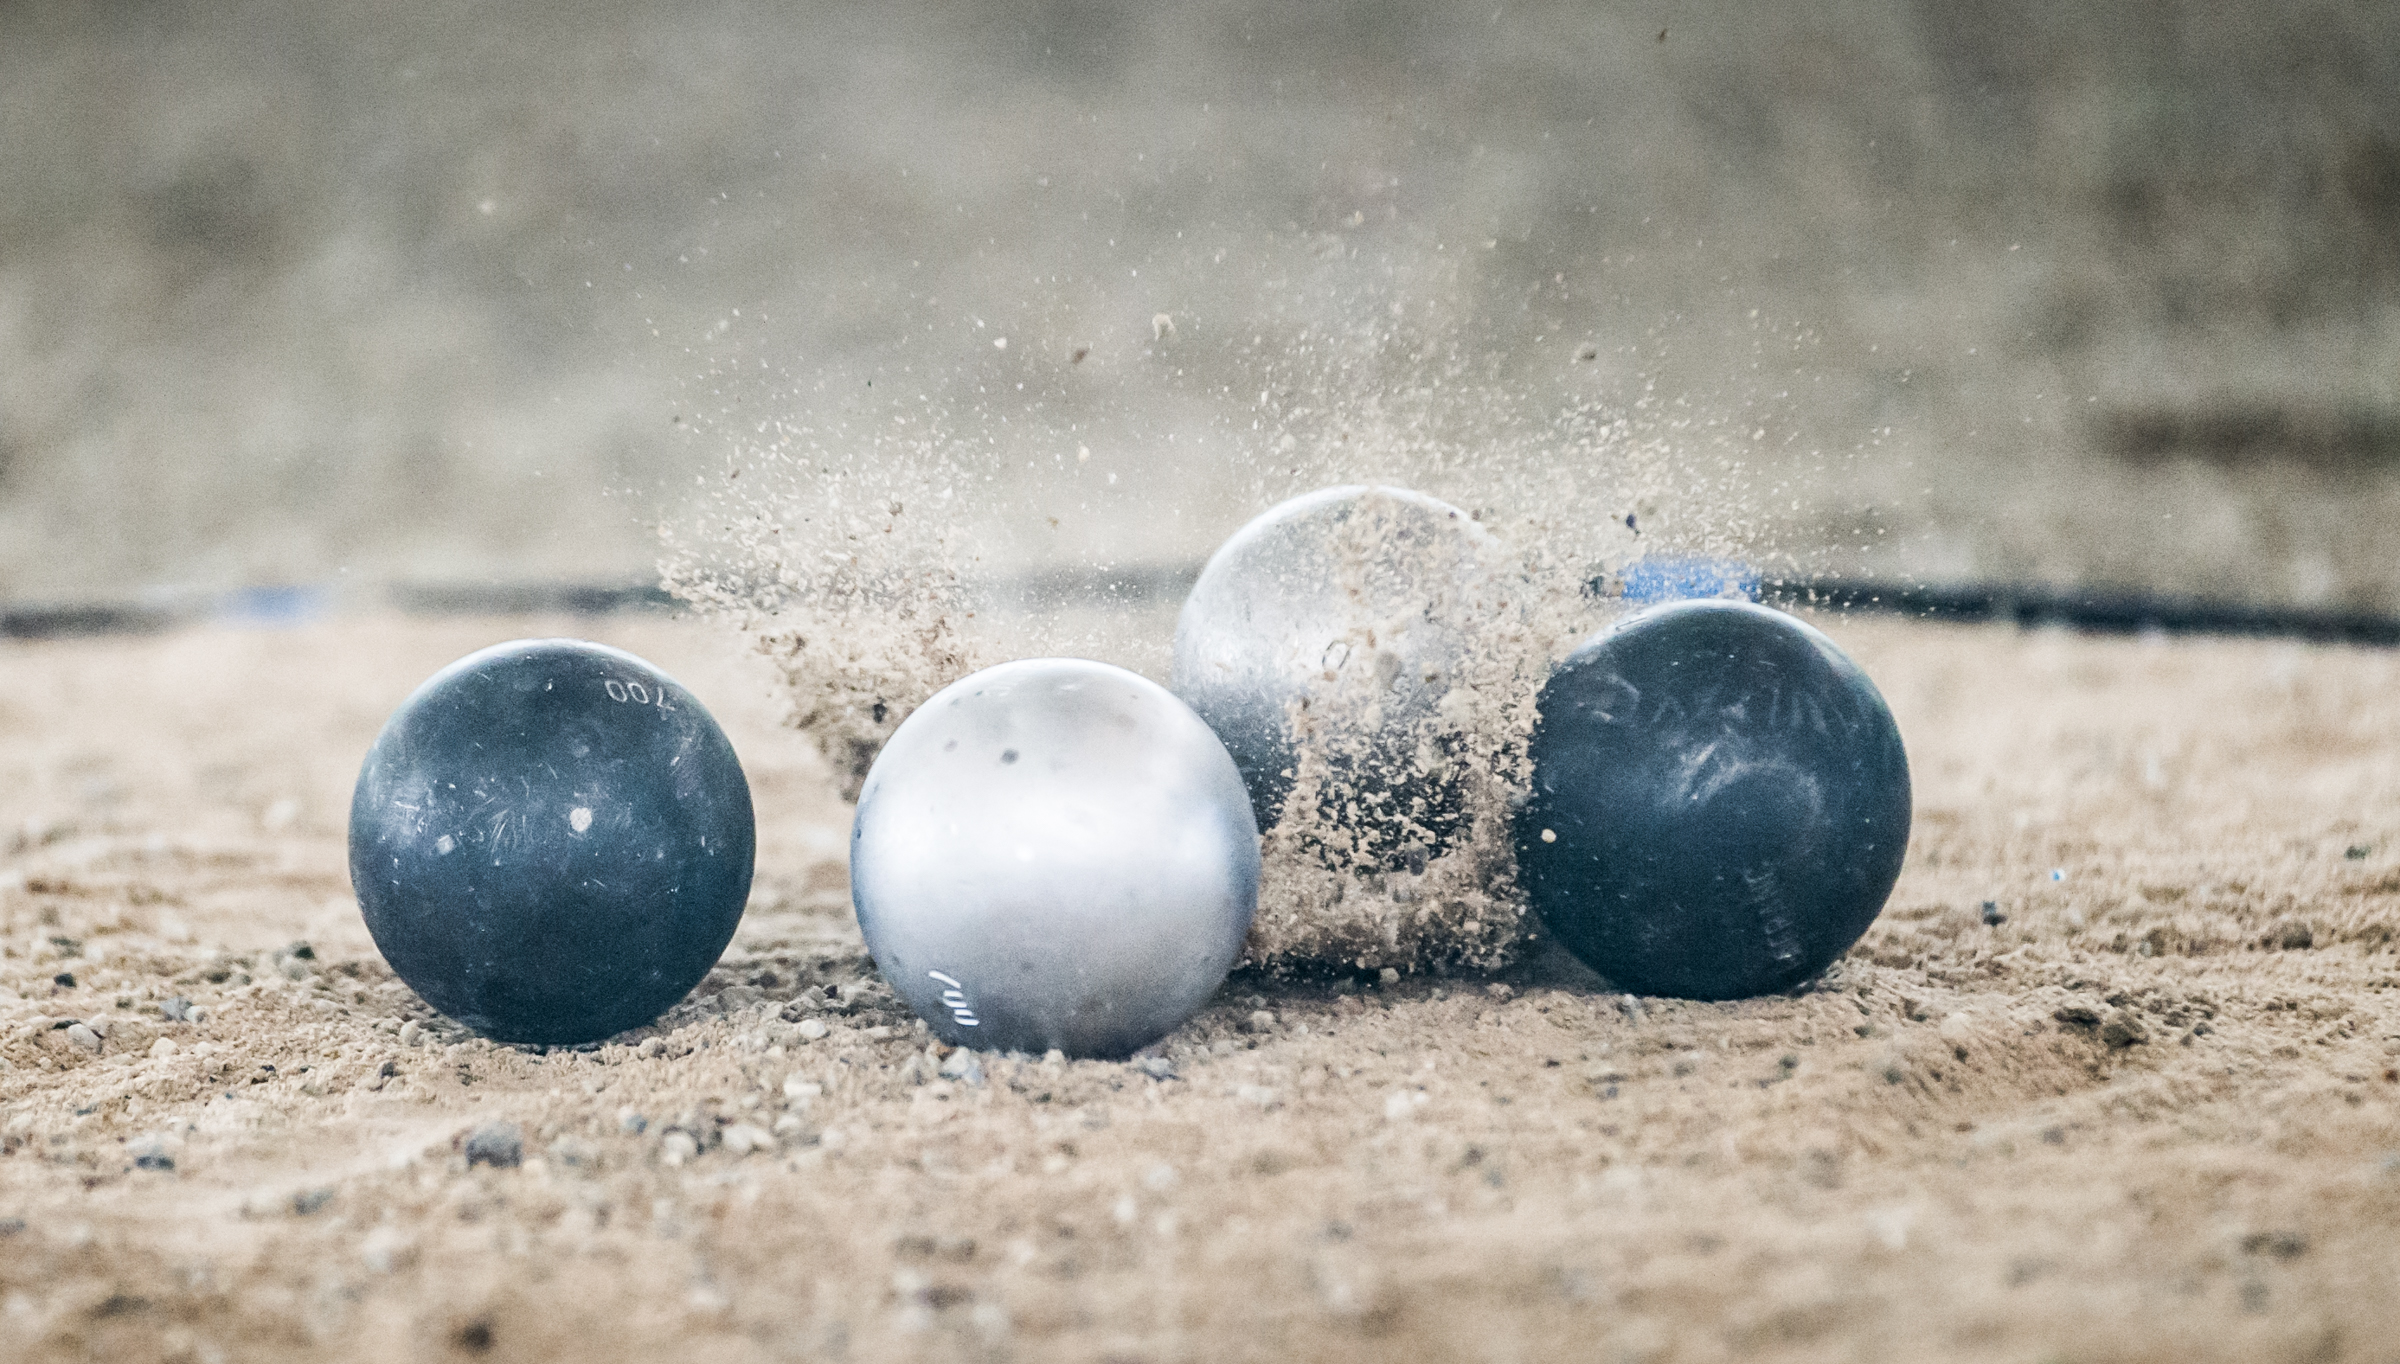 Petanque balls collide during the ASEAN University Games at the Toa Payoh Sports Complex.